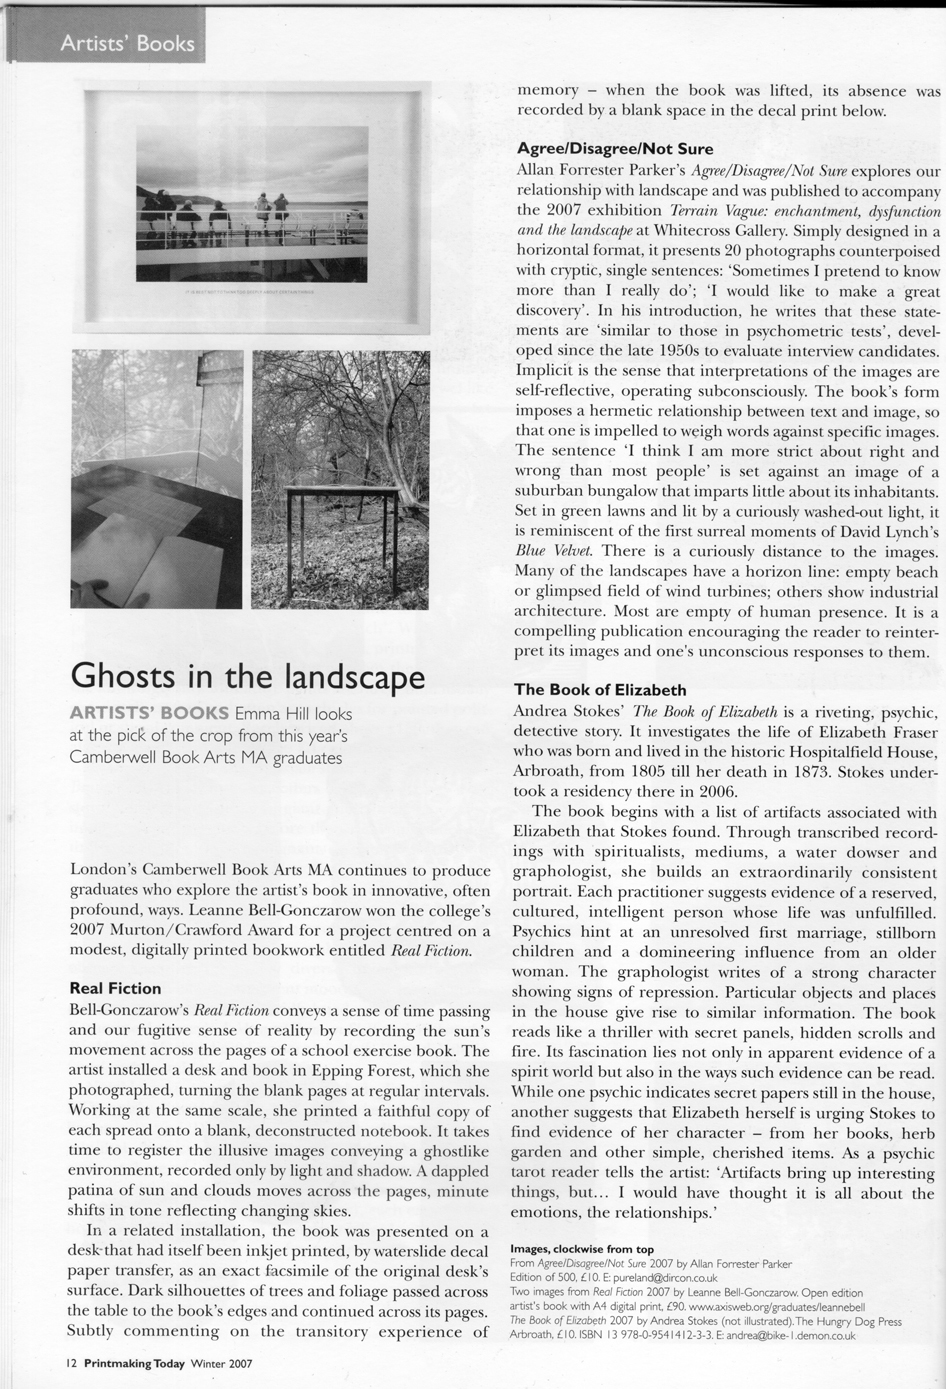 Emma Hill from Eagle Gallery reviews Real Fiction (at Camberwell MA exhibition) in Printmaking today, Winter 2007